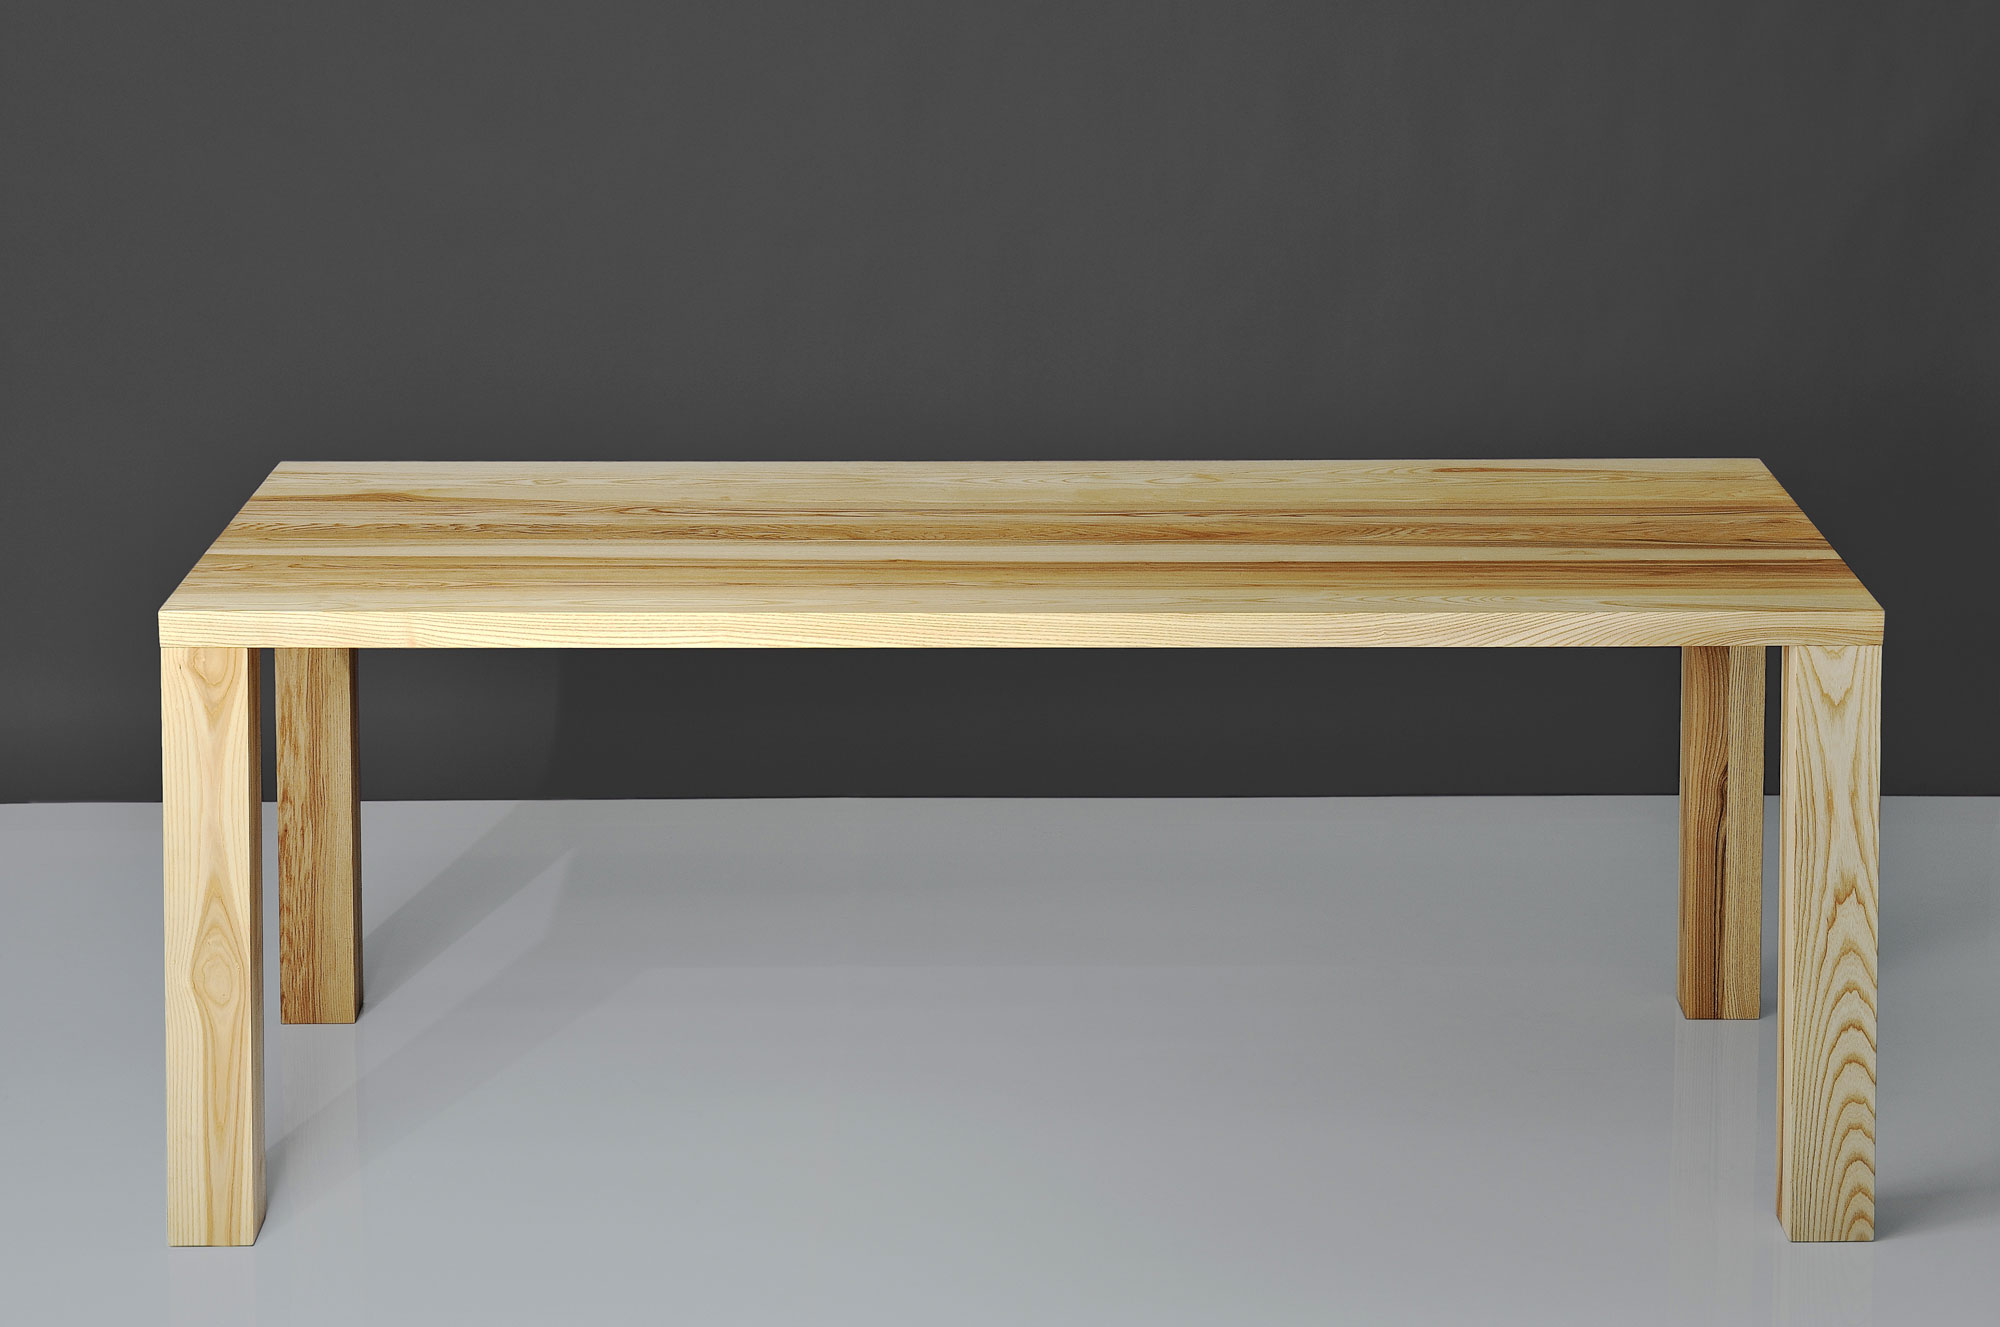 Frameless Solid Wood Table IUSTUS 016 custom made in solid wood by vitamin design